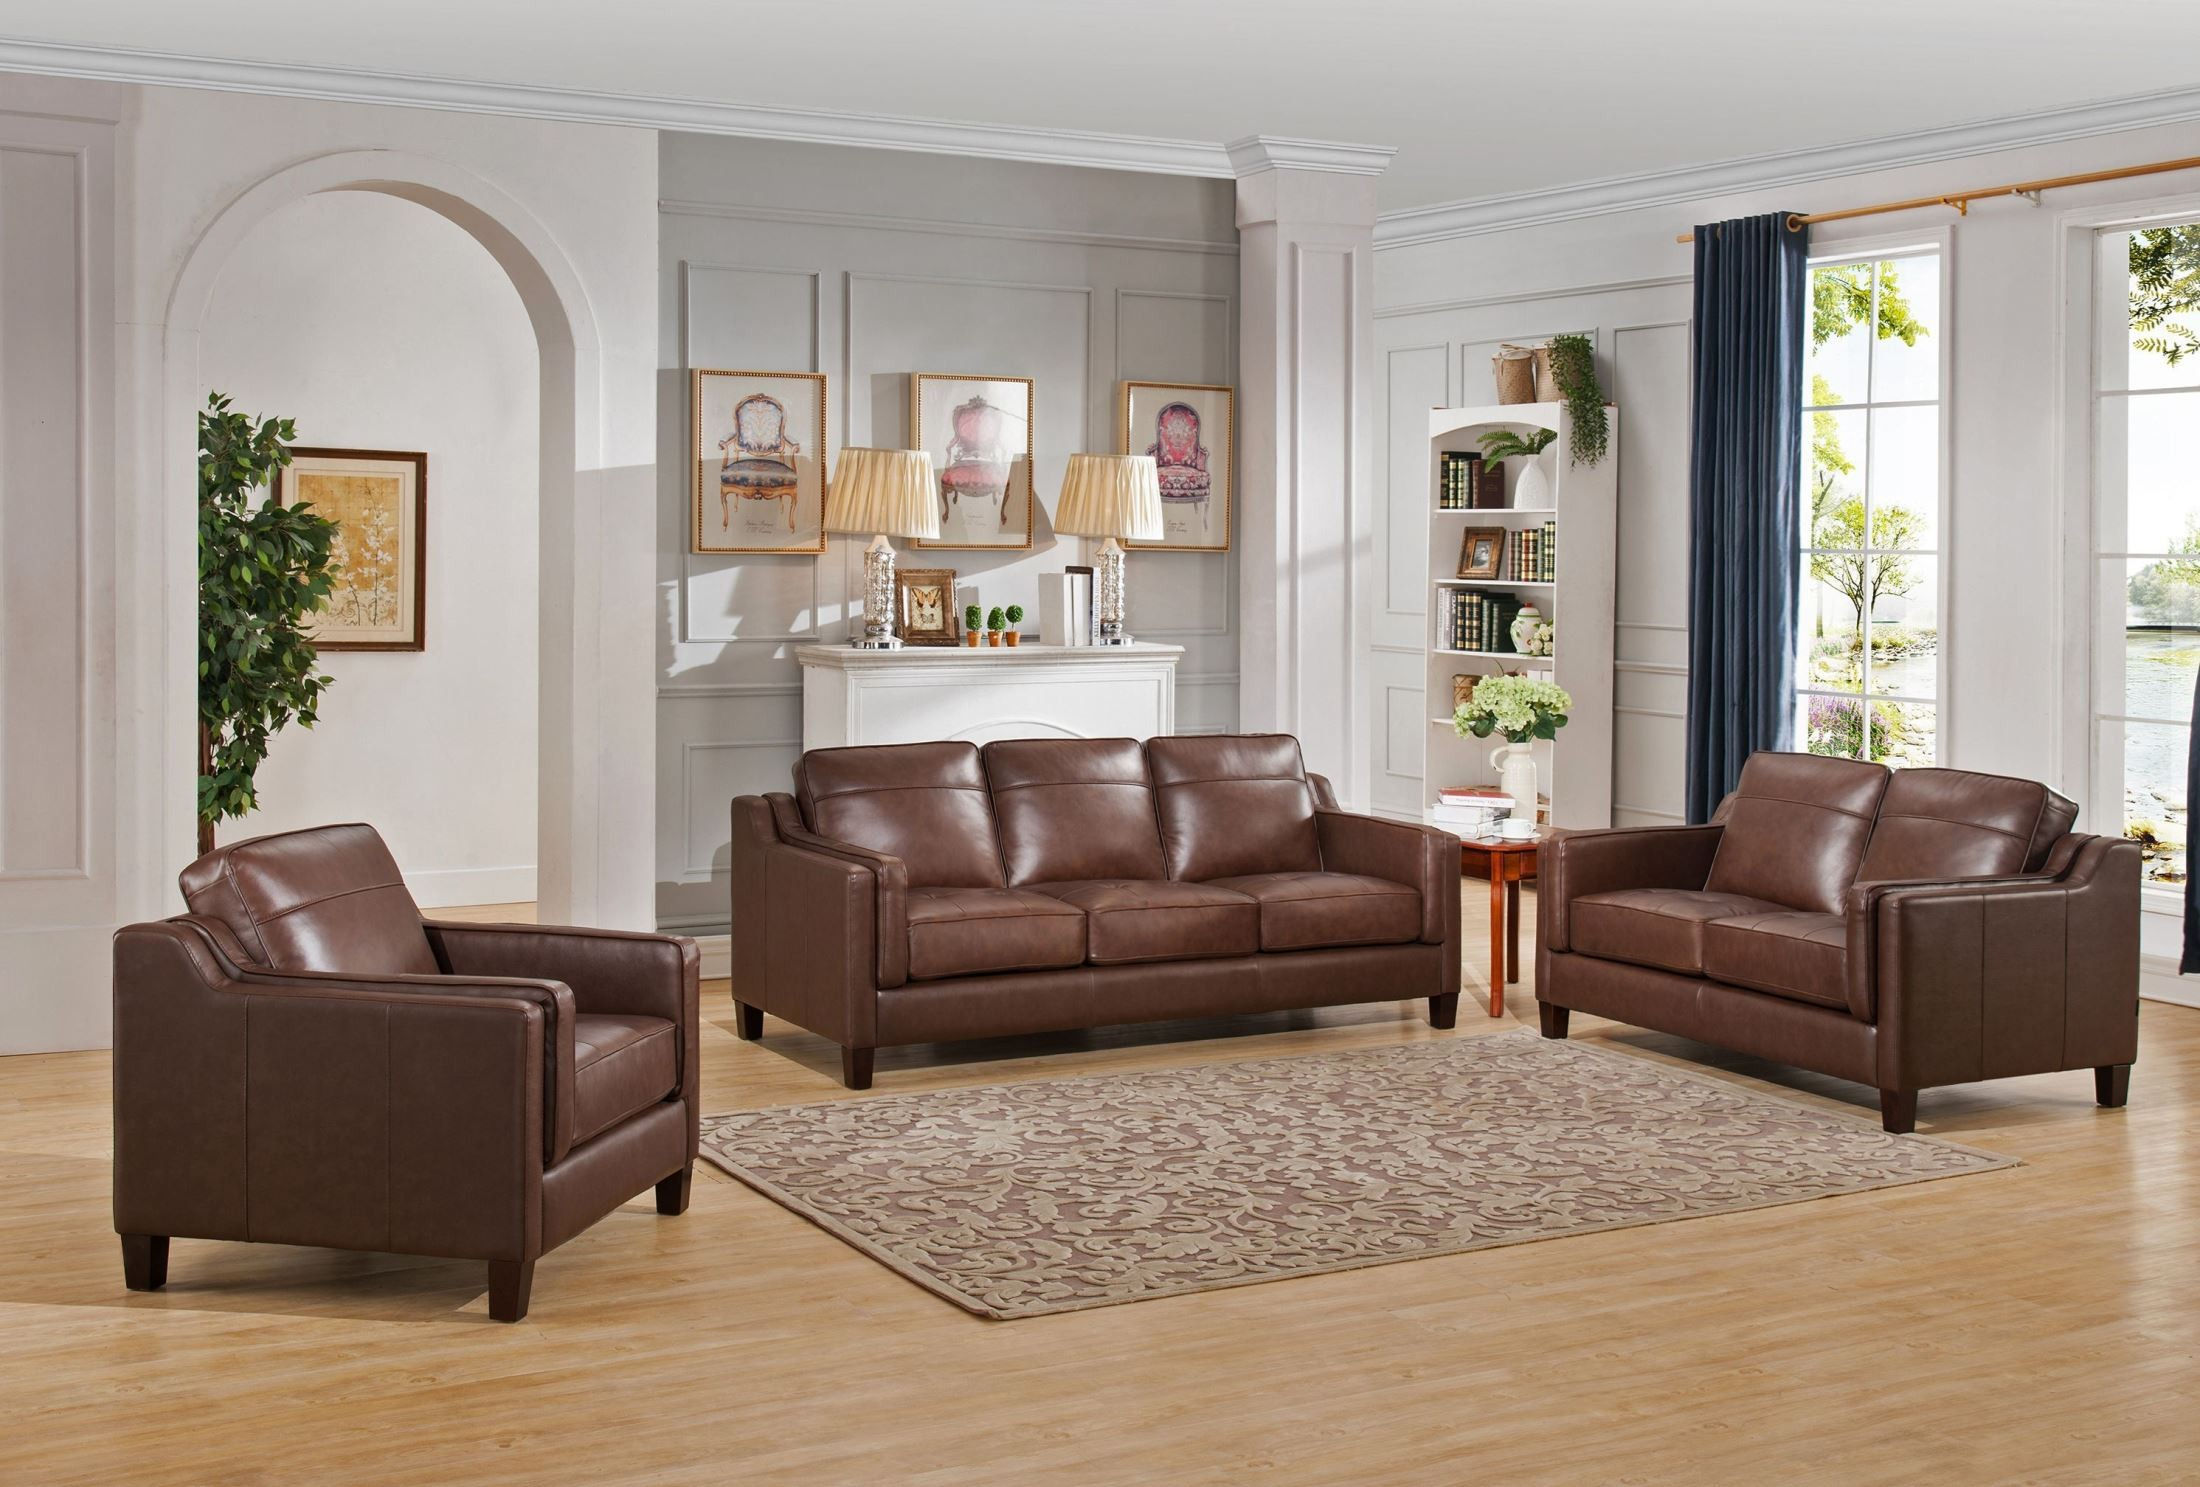 Acorn Brown 3 Piece Leather Living Room Set From Amax. Living Room Decorating Ideas. Living Room Decor Light Blue Walls. Black Living Room Furniture. Entertainment Centers For Living Rooms. Contemporary Living Room Art. Tropical Living Room. Living Room Color Ideas With Wood Floors. 4 Chair Living Room Arrangement